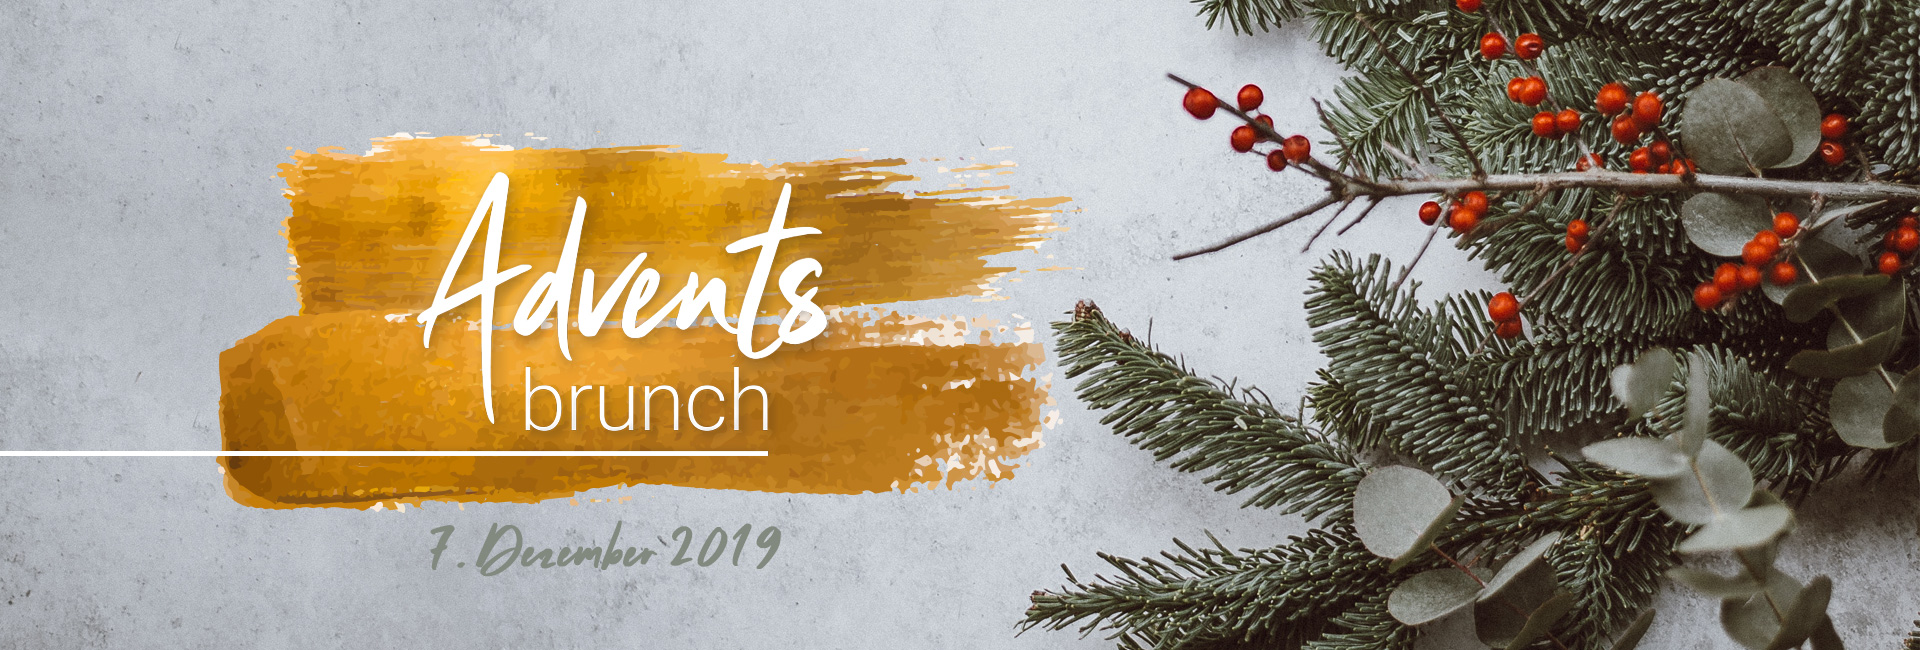 slide de SFH Adventsbrunch 2019 2